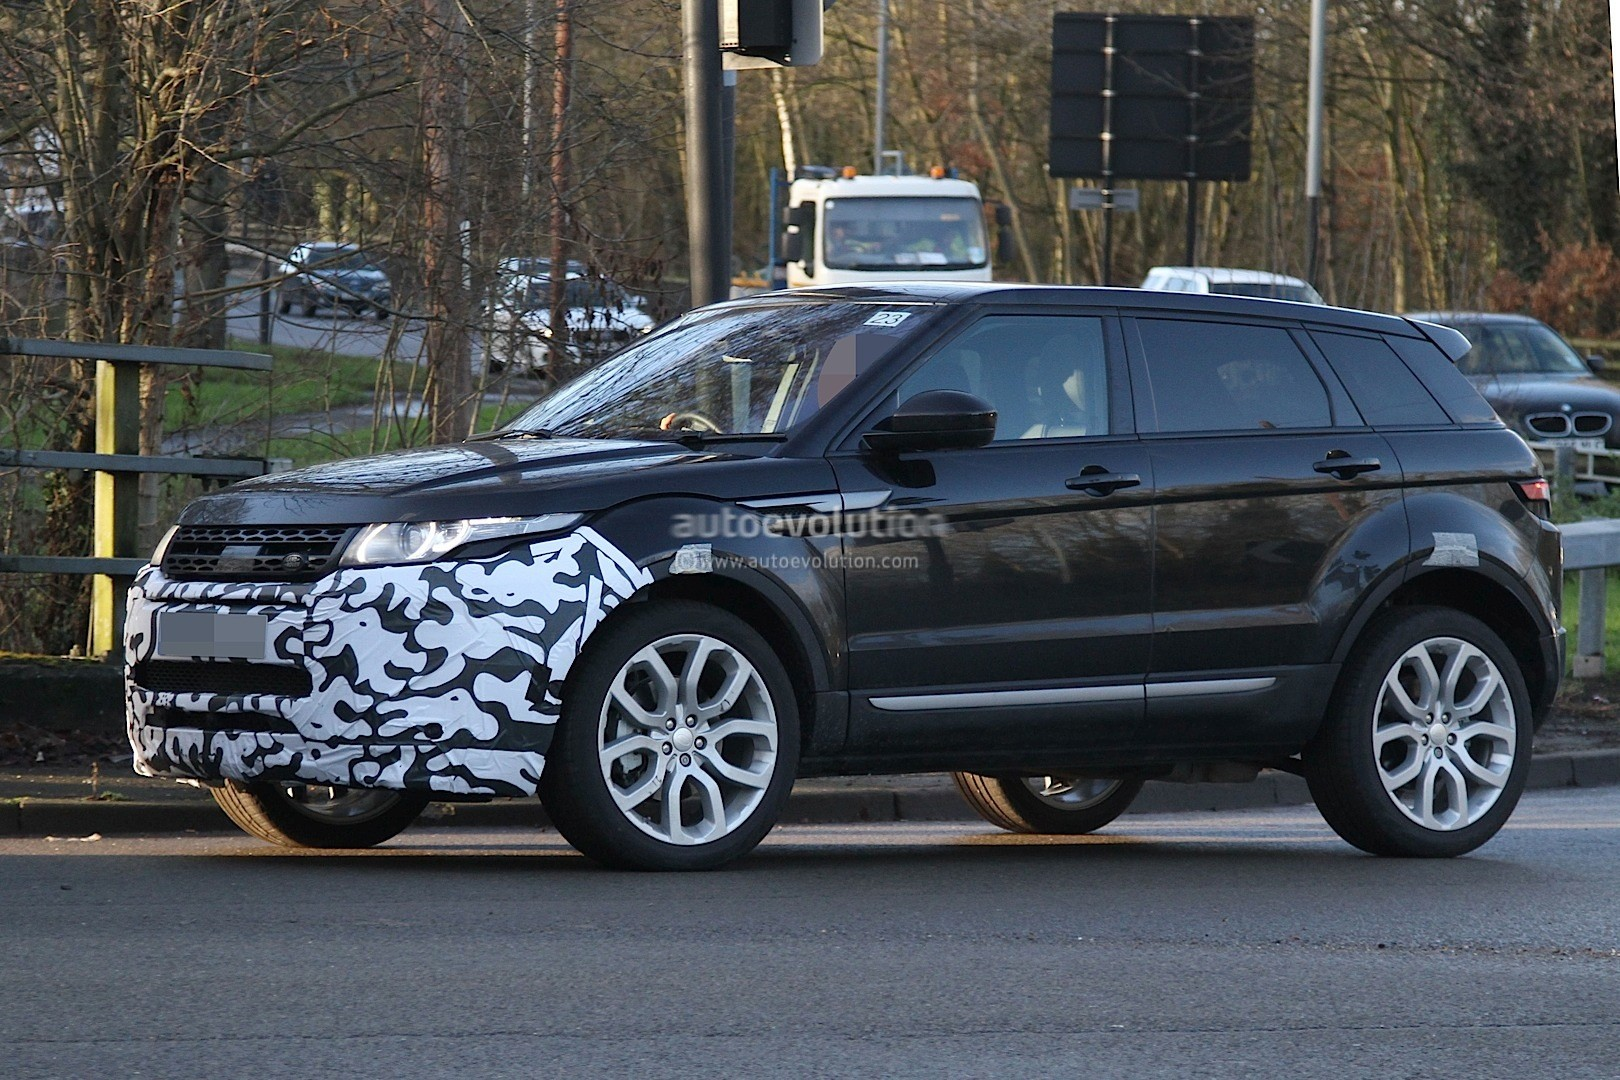 2016 range rover evoque mid life facelift spied ingenium. Black Bedroom Furniture Sets. Home Design Ideas